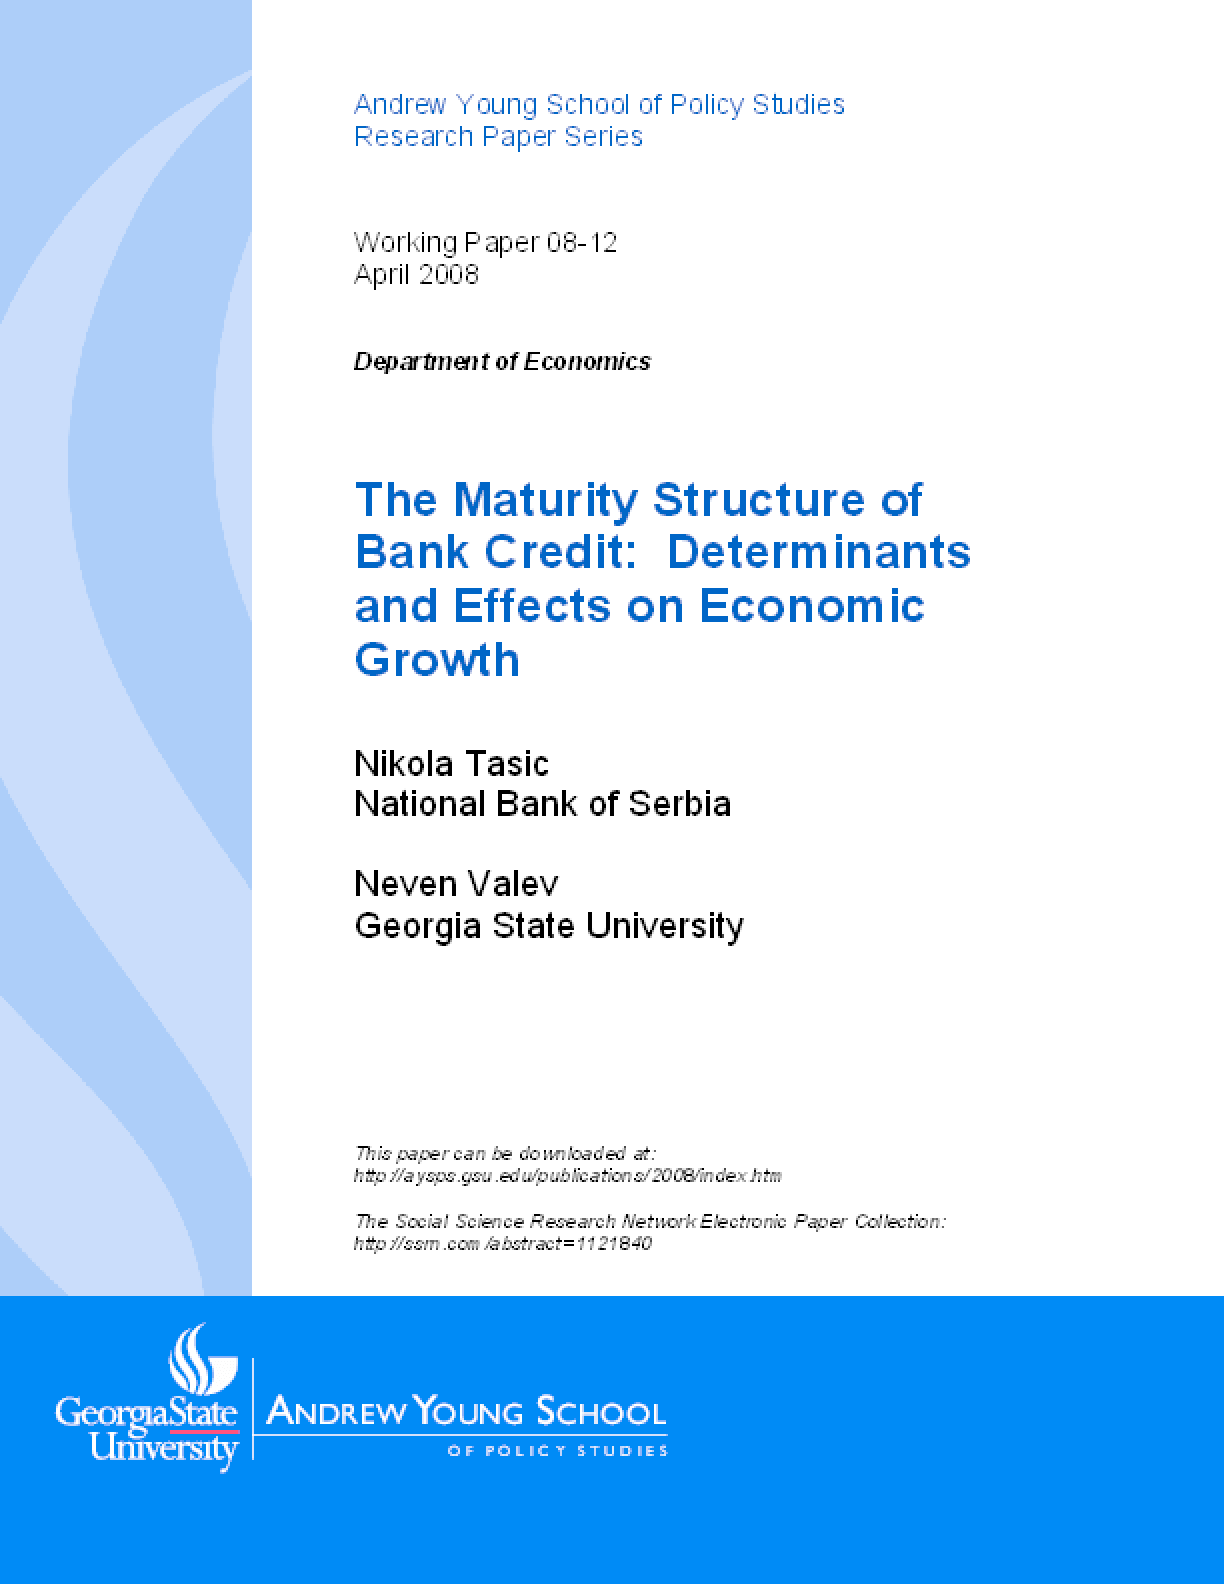 The Maturity Structure of Bank Credit: Determinants and Effects on Economic Growth